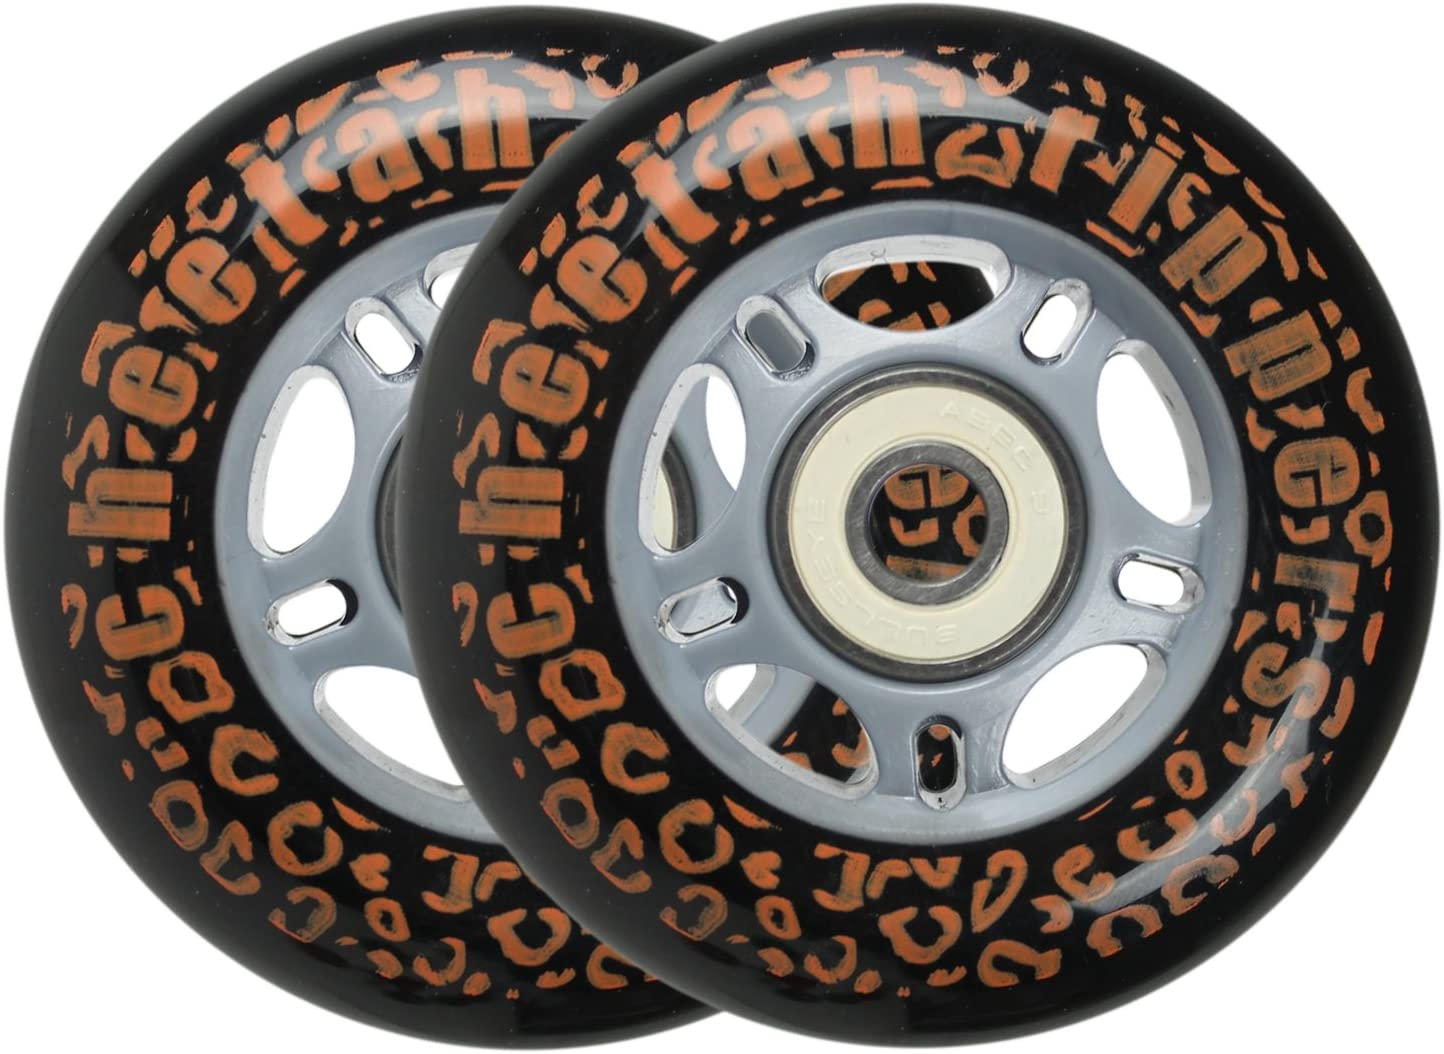 Cheetah Rippers Wheels for Ripstik Wave Board